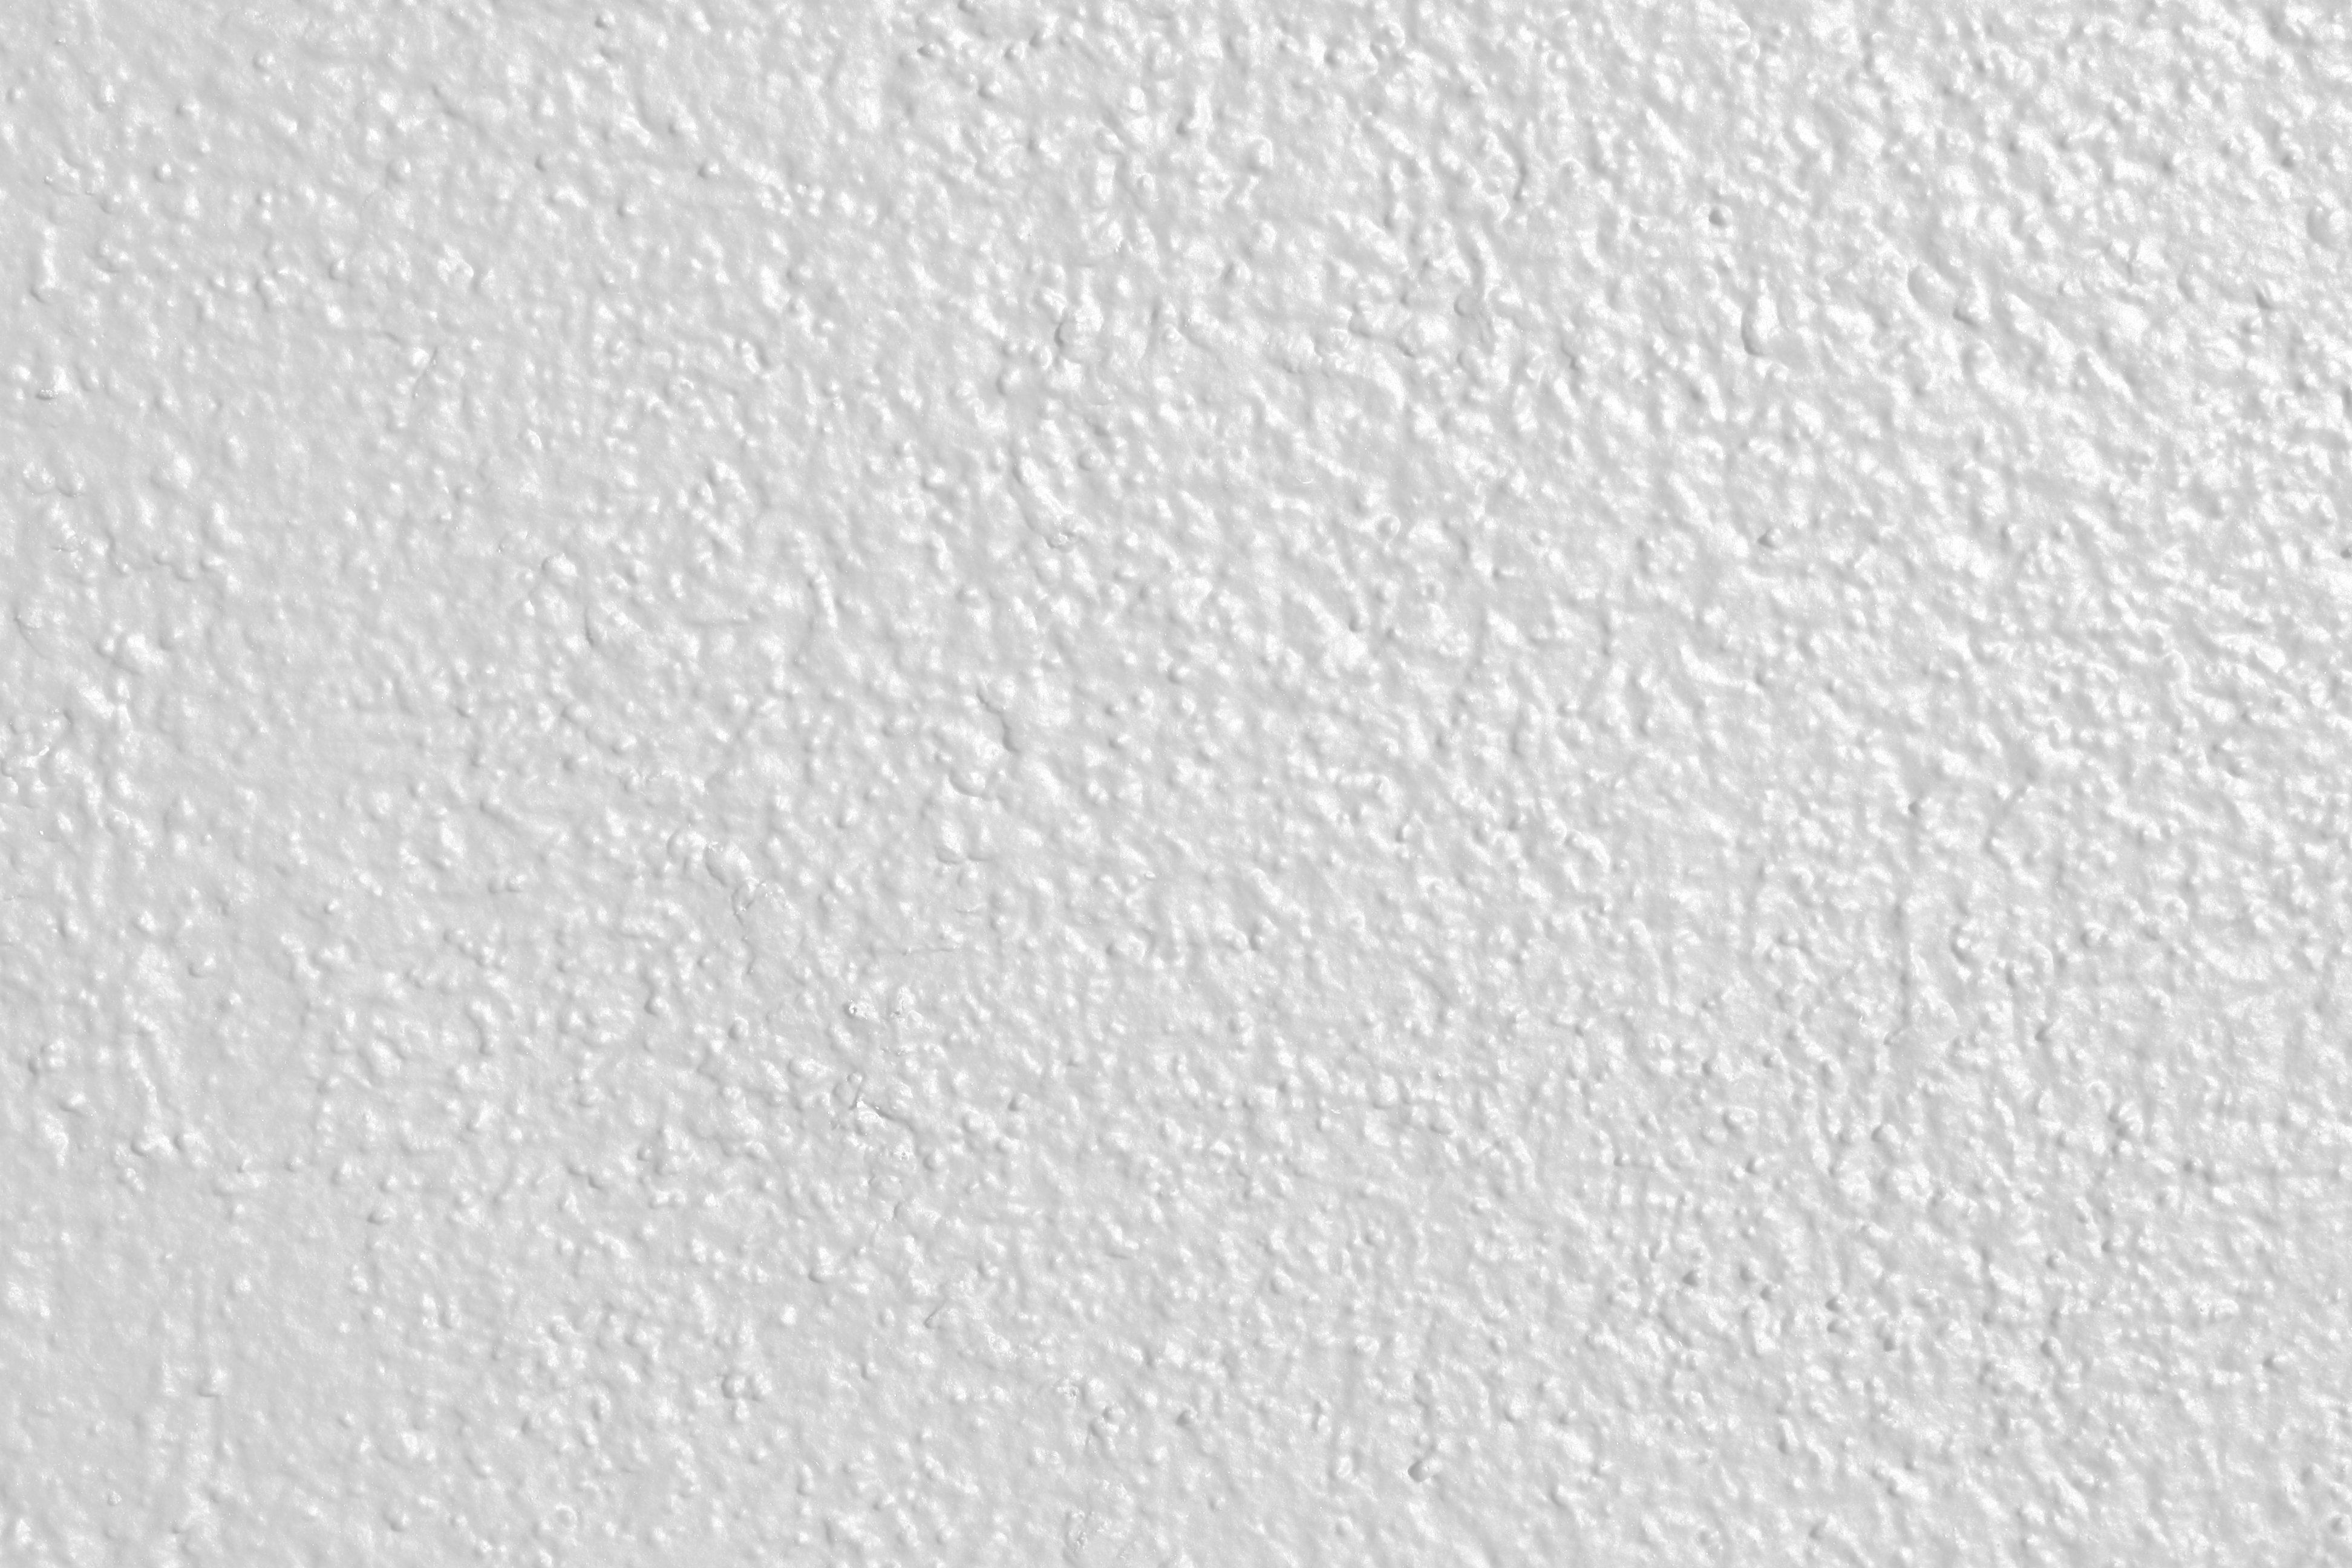 White Painted Wall Texture Blanco Pinterest Wall textures